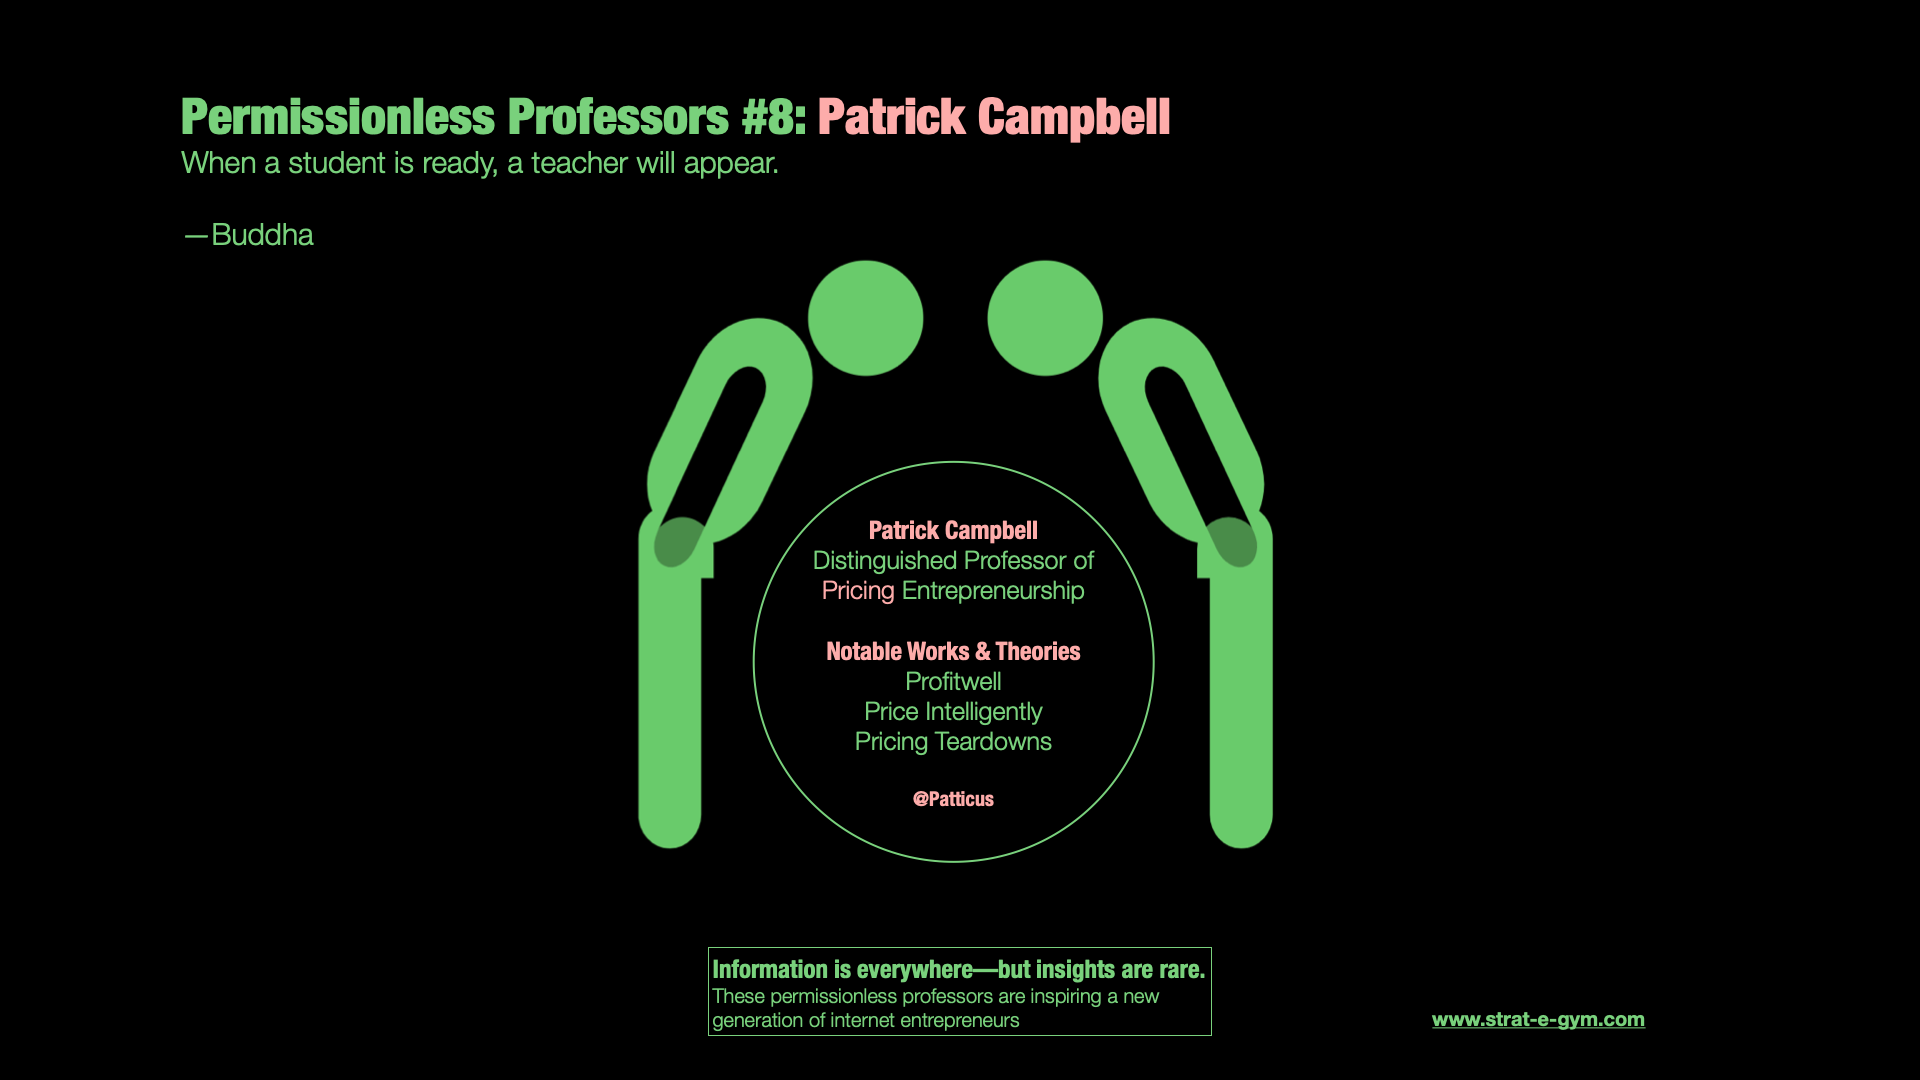 Permissionless Professors #8: Patrick Campbell